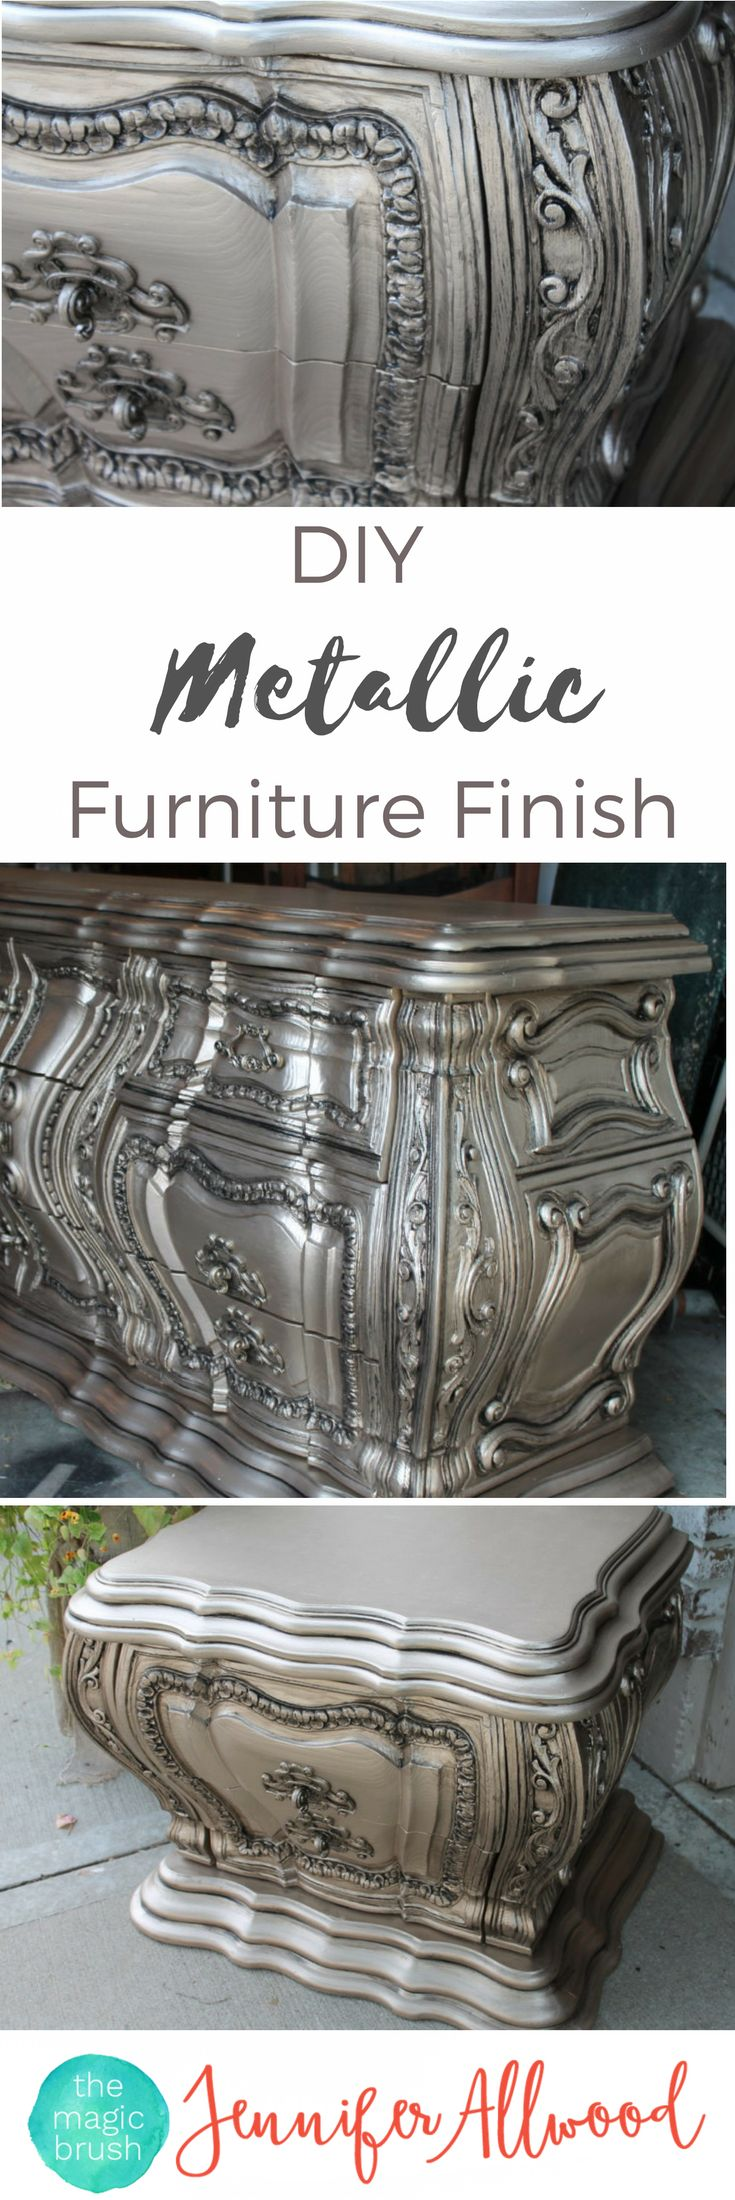 How To Paint Metallic Furniture This Is A Gorgeous Diy Silver Furniture Finish That Looks